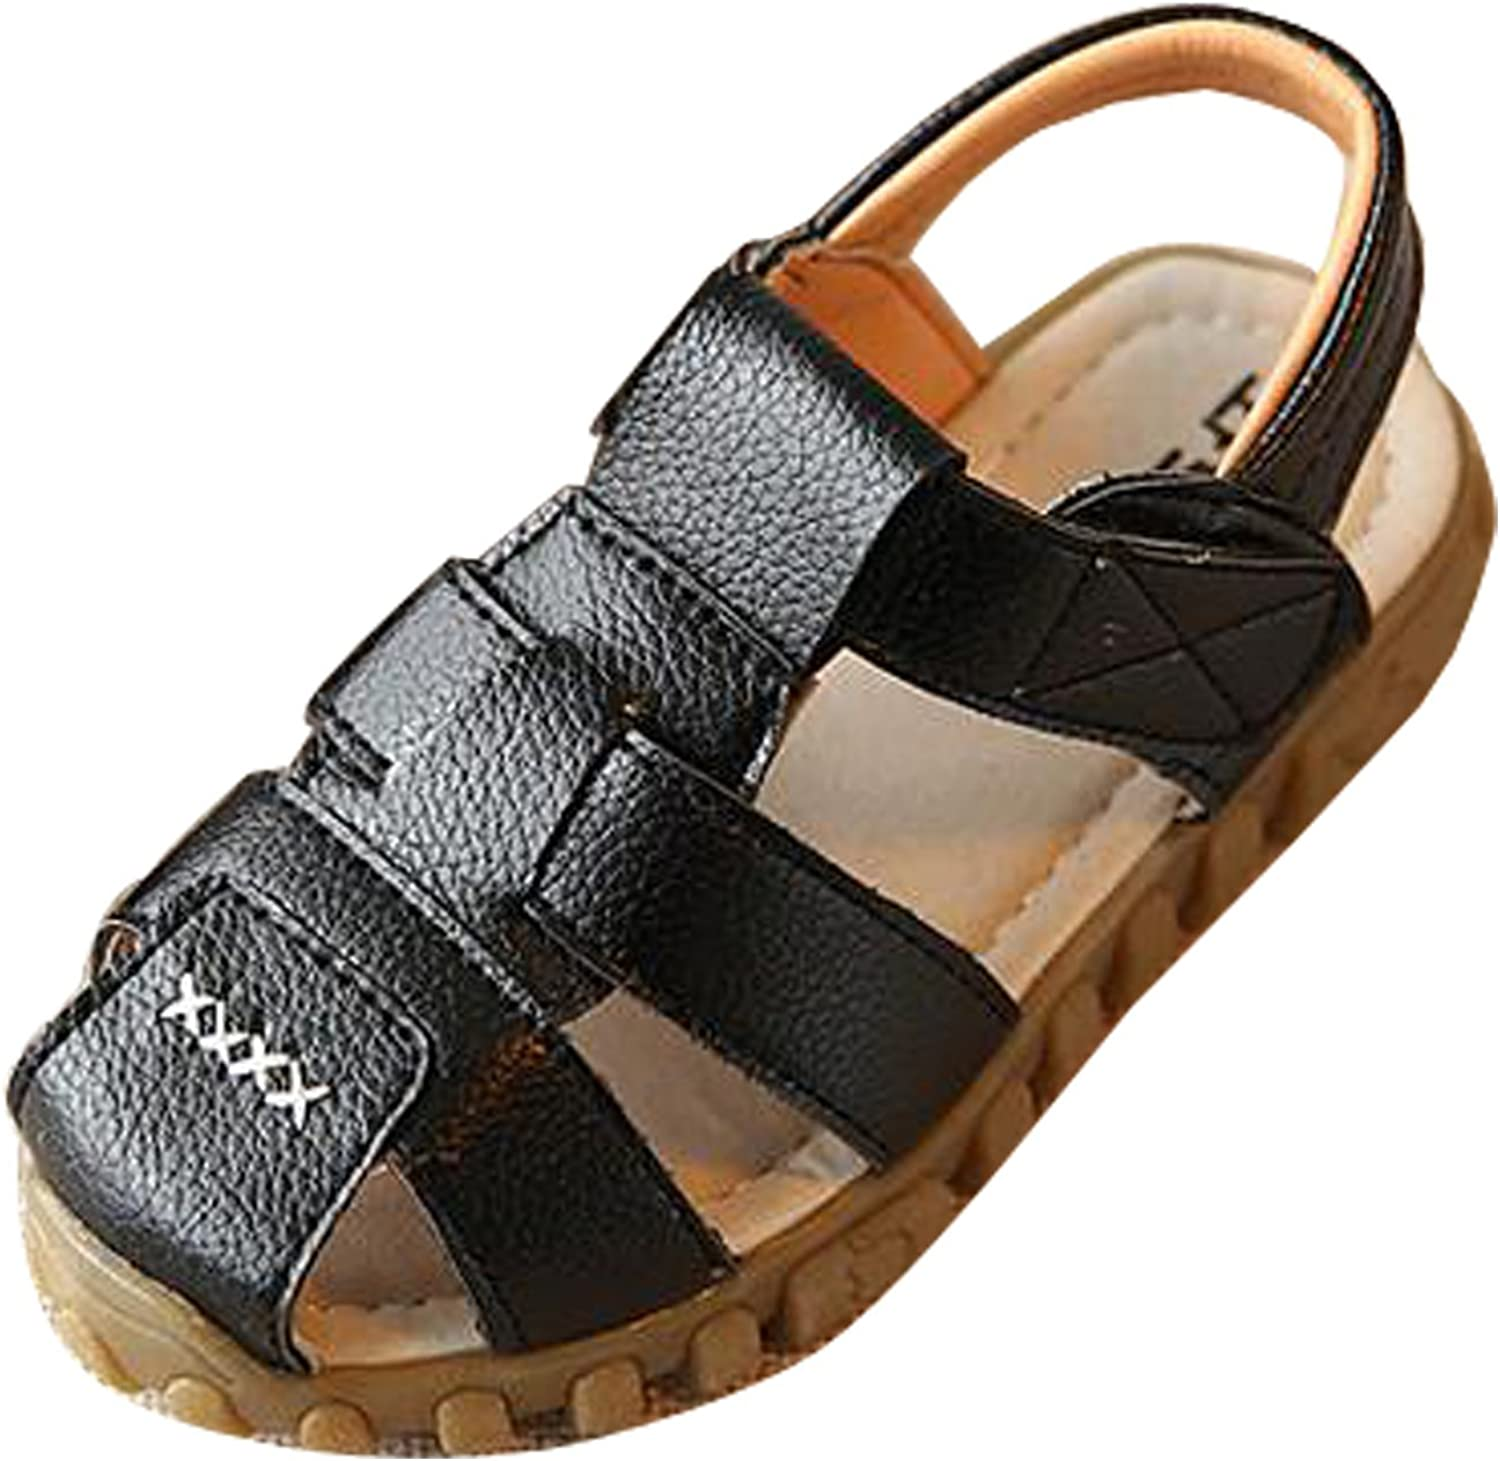 Kid Child Boy Leather Closed Toe Sandals Beach Flat Oxford Water Shoes Loafers